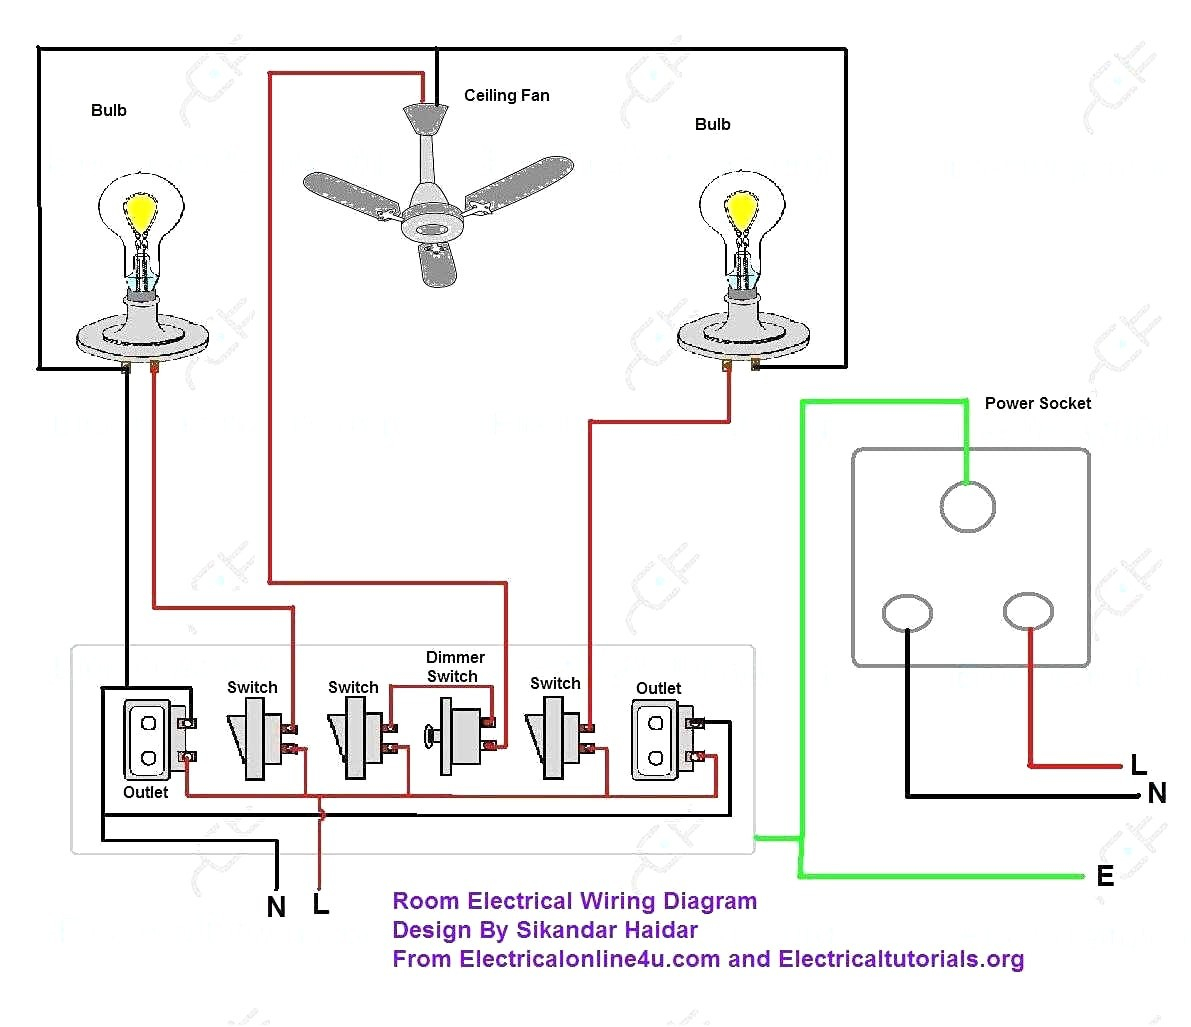 Home Electrical Wiring Diagrams Basic House Wiring Diagram Today Diagram Database